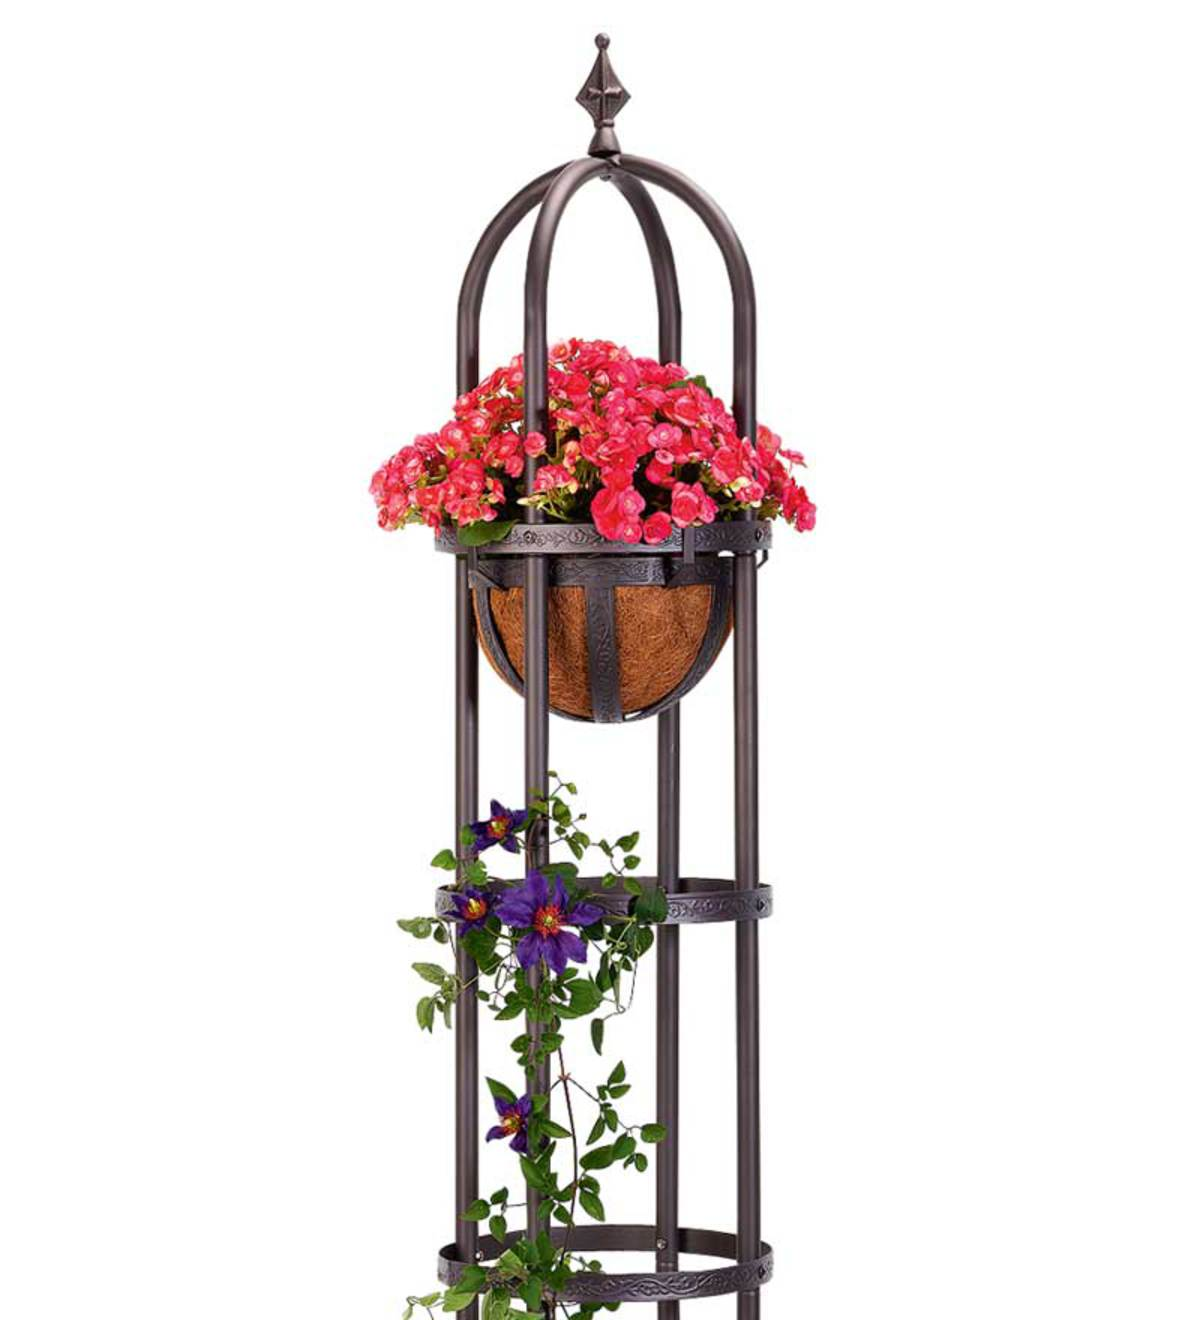 Powder-Coated Steel Basket Planter with Coco Liner - BRONZE